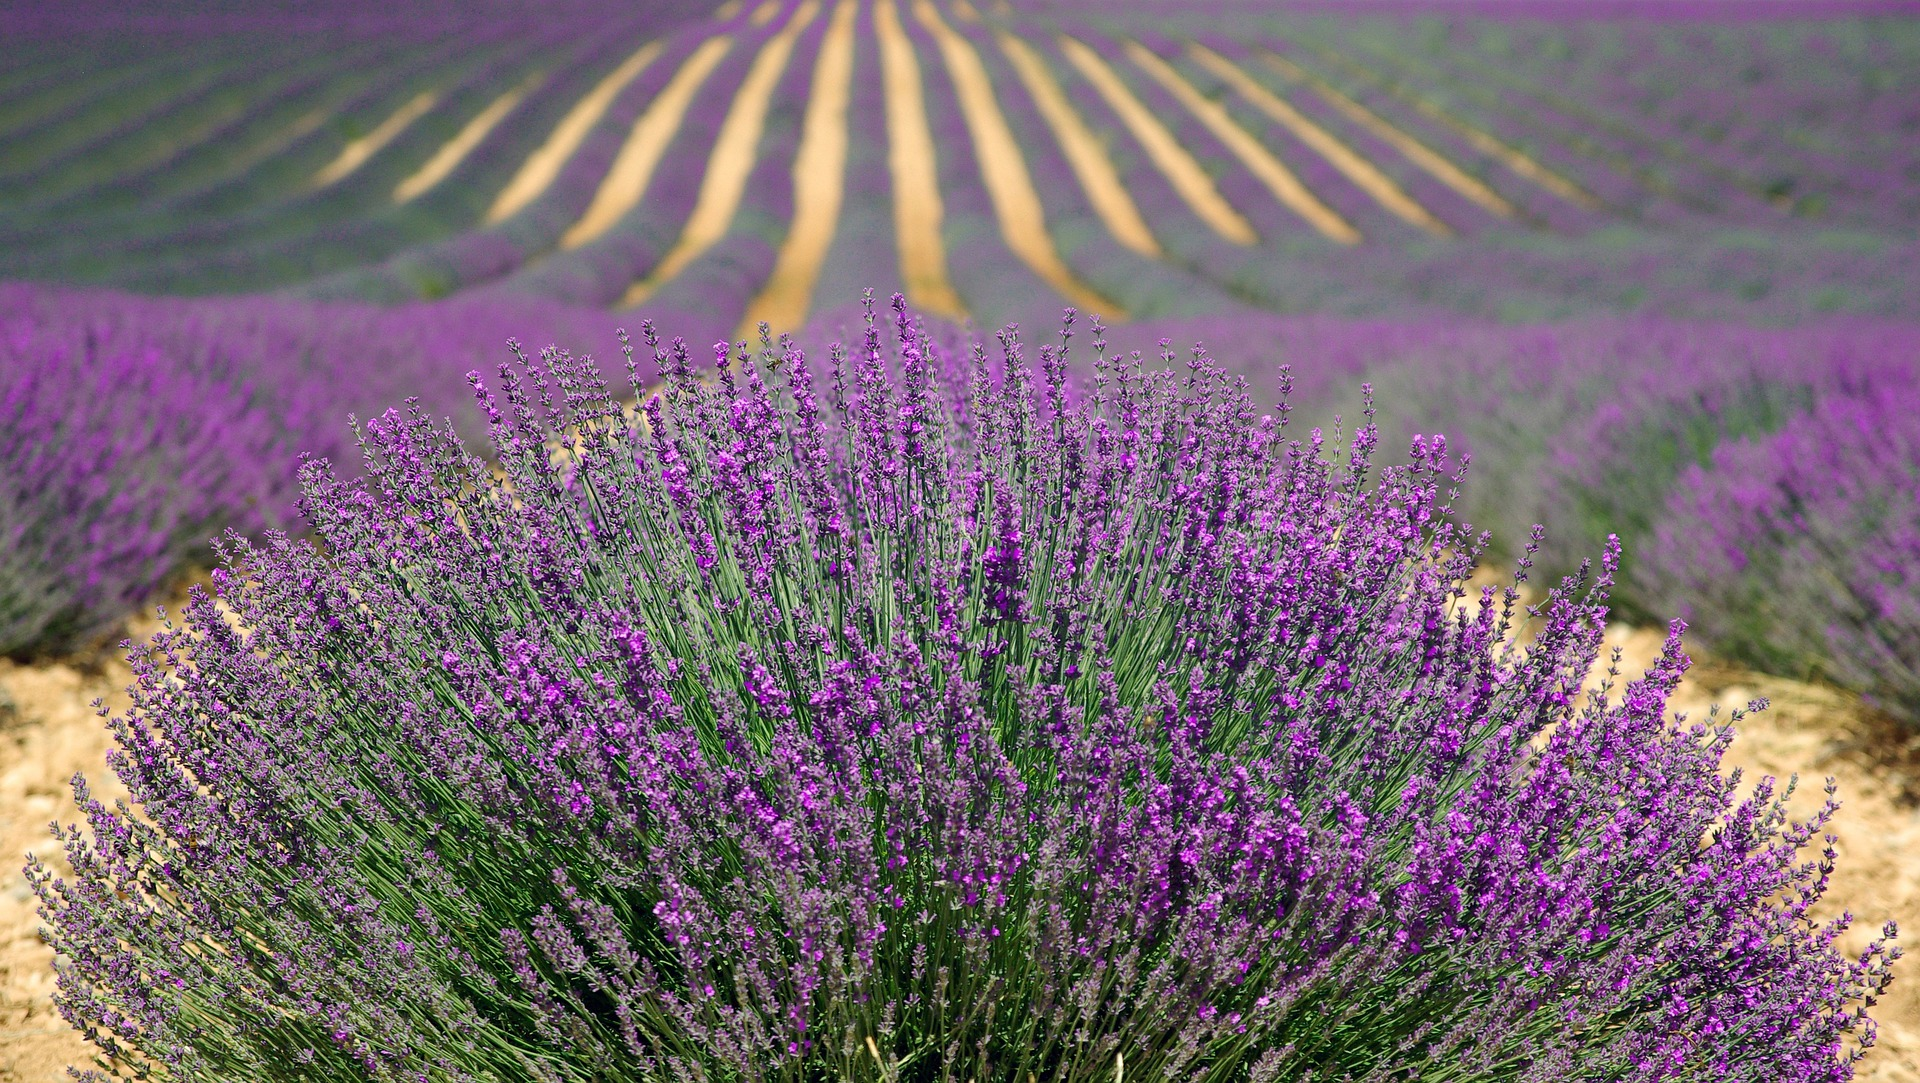 Image of a lavender field in France